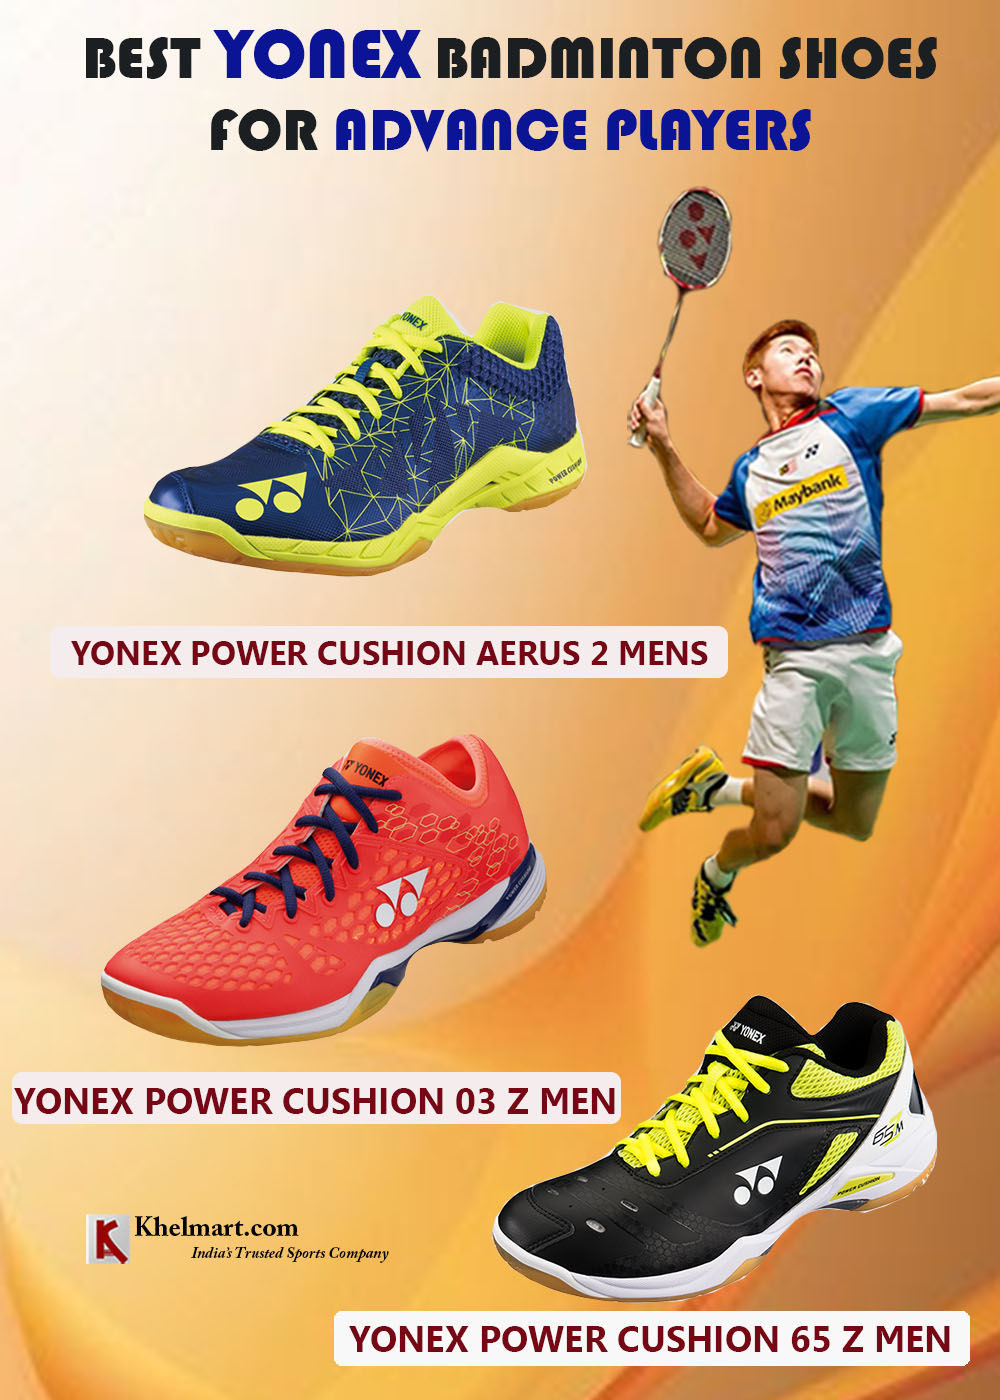 BEST YONEX BADMINTON SHOES FOR ADVANCE PLAYERS_1